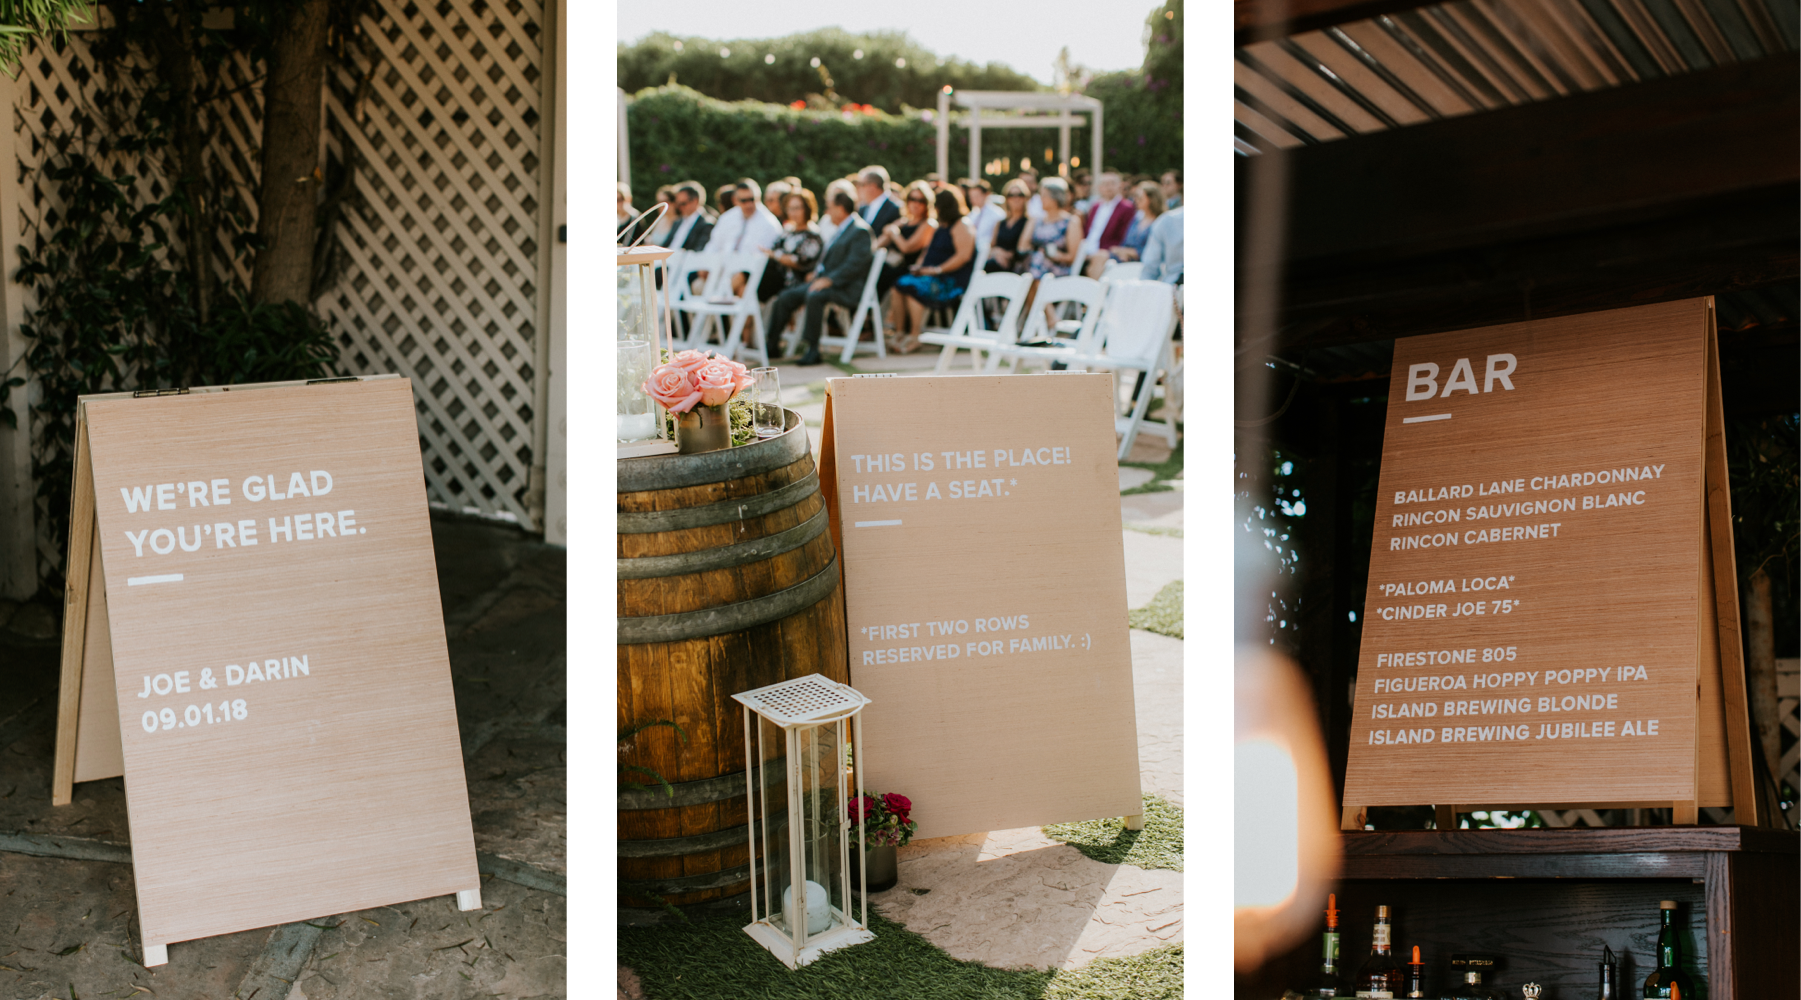 Photos of wedding signs displayed at the ceremony and over the bar